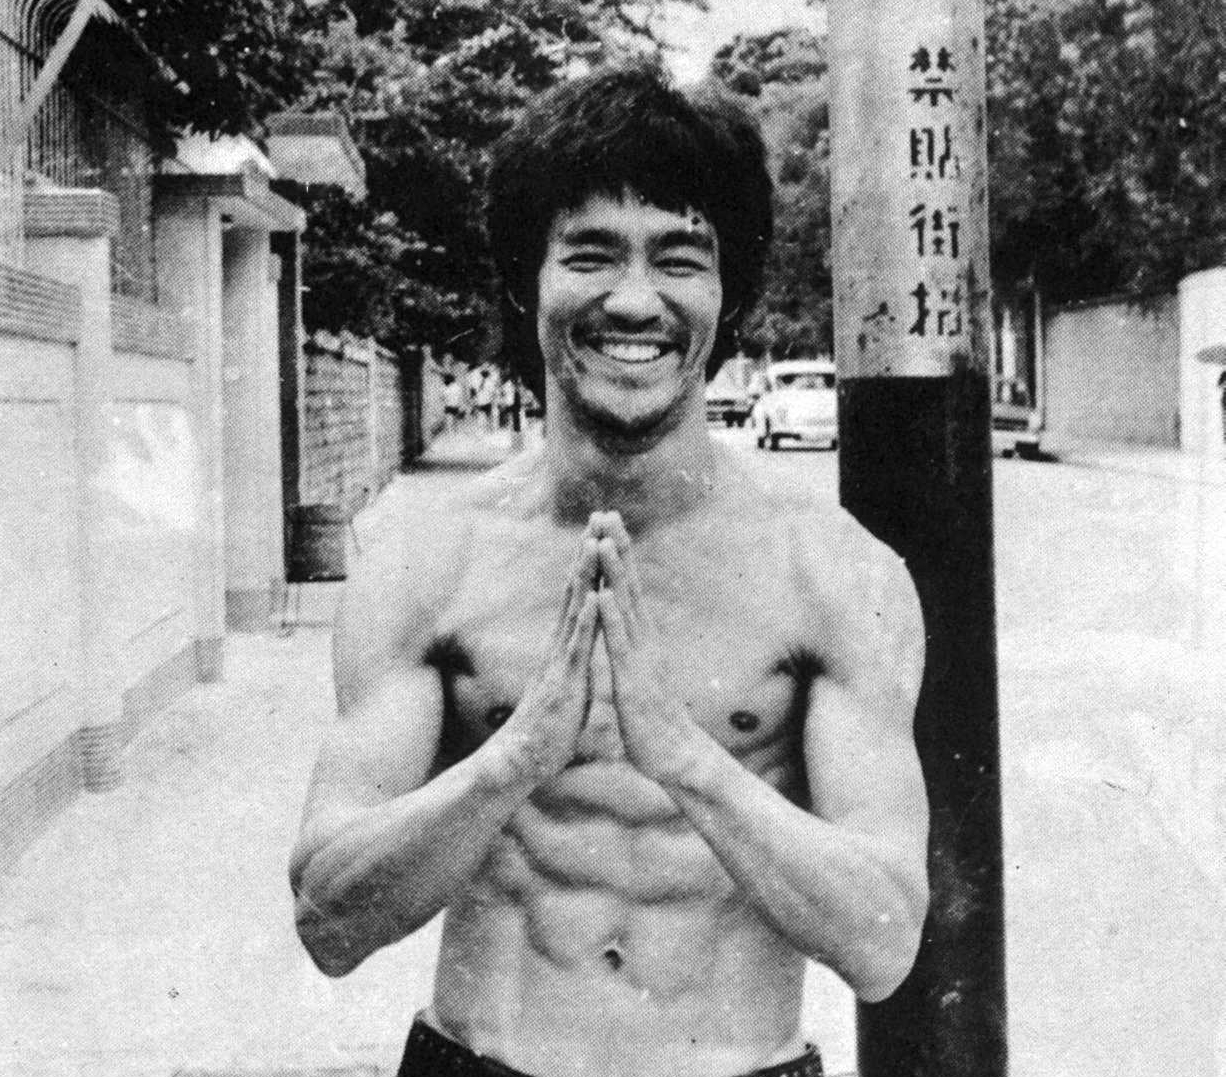 https://i1.wp.com/www.blackbeltforums.com/attachments/bruce-lee-jpg.806/